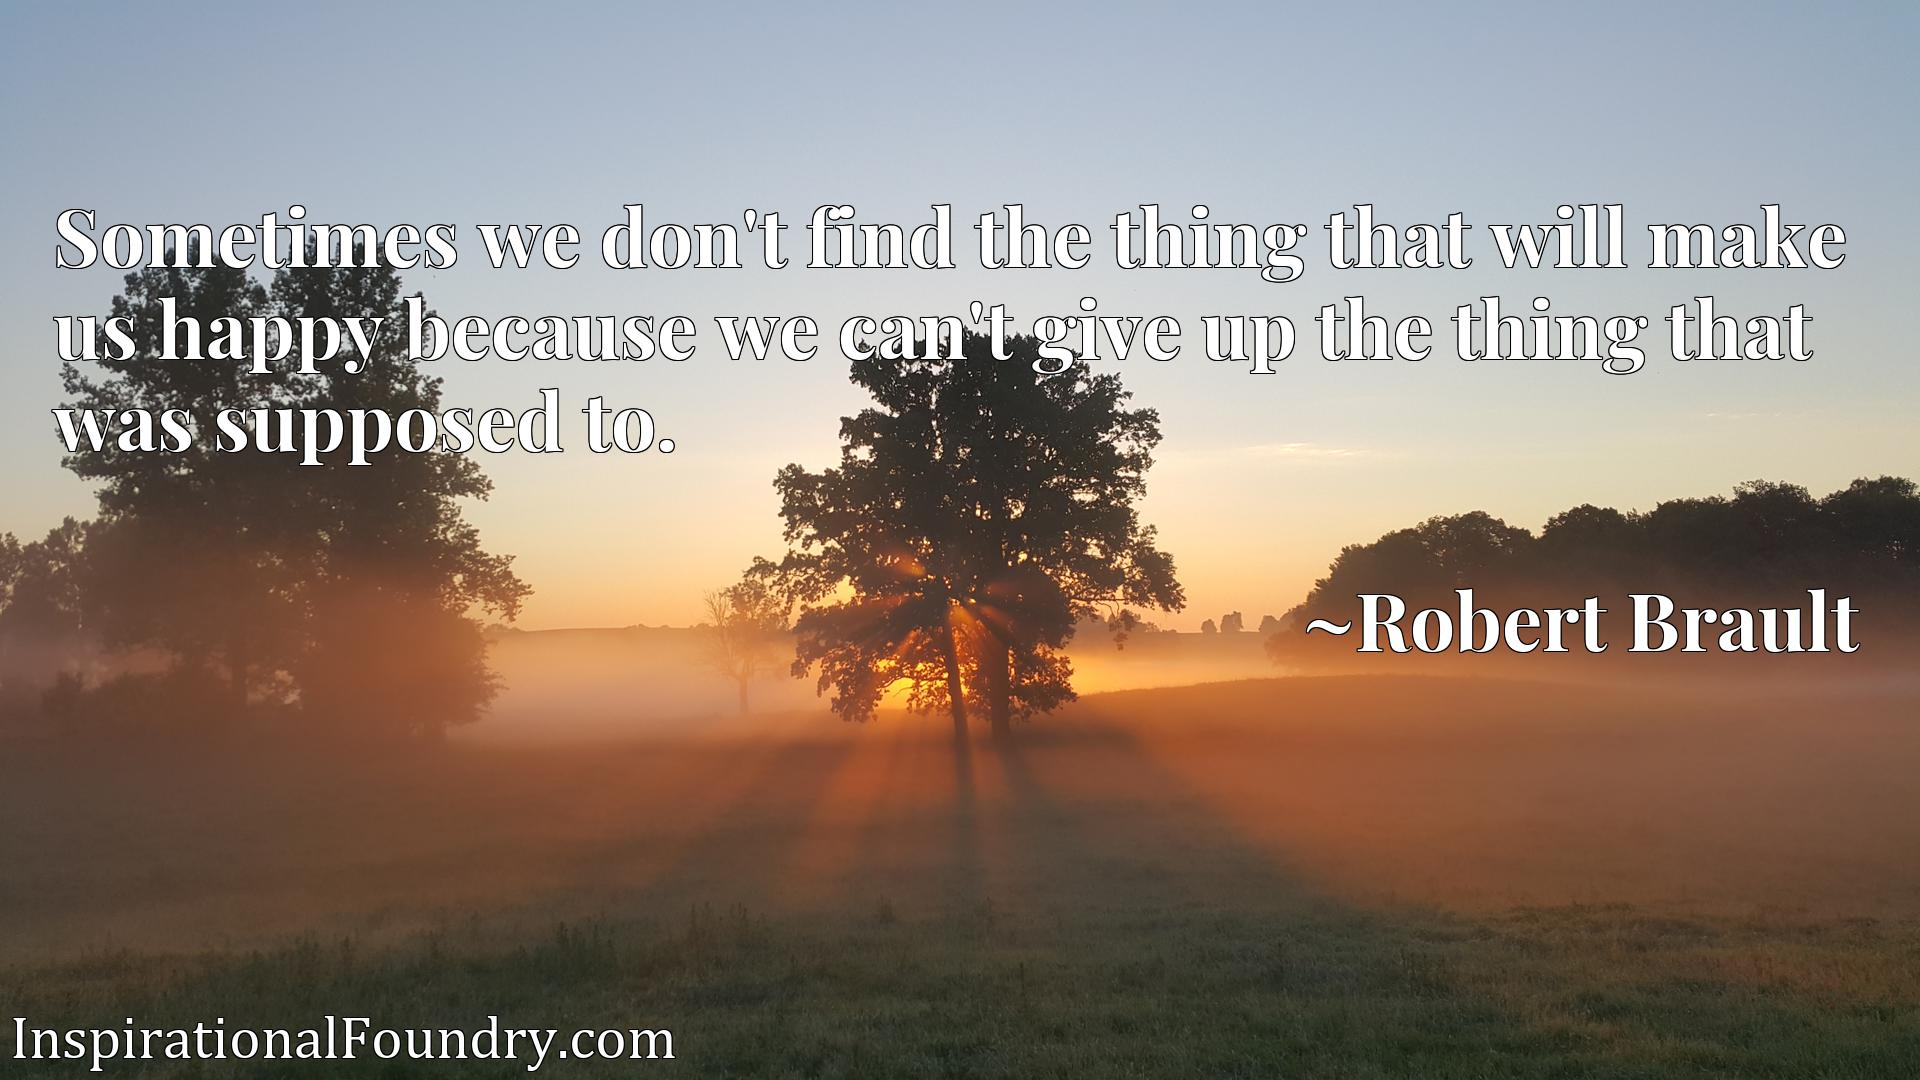 Sometimes we don't find the thing that will make us happy because we can't give up the thing that was supposed to.